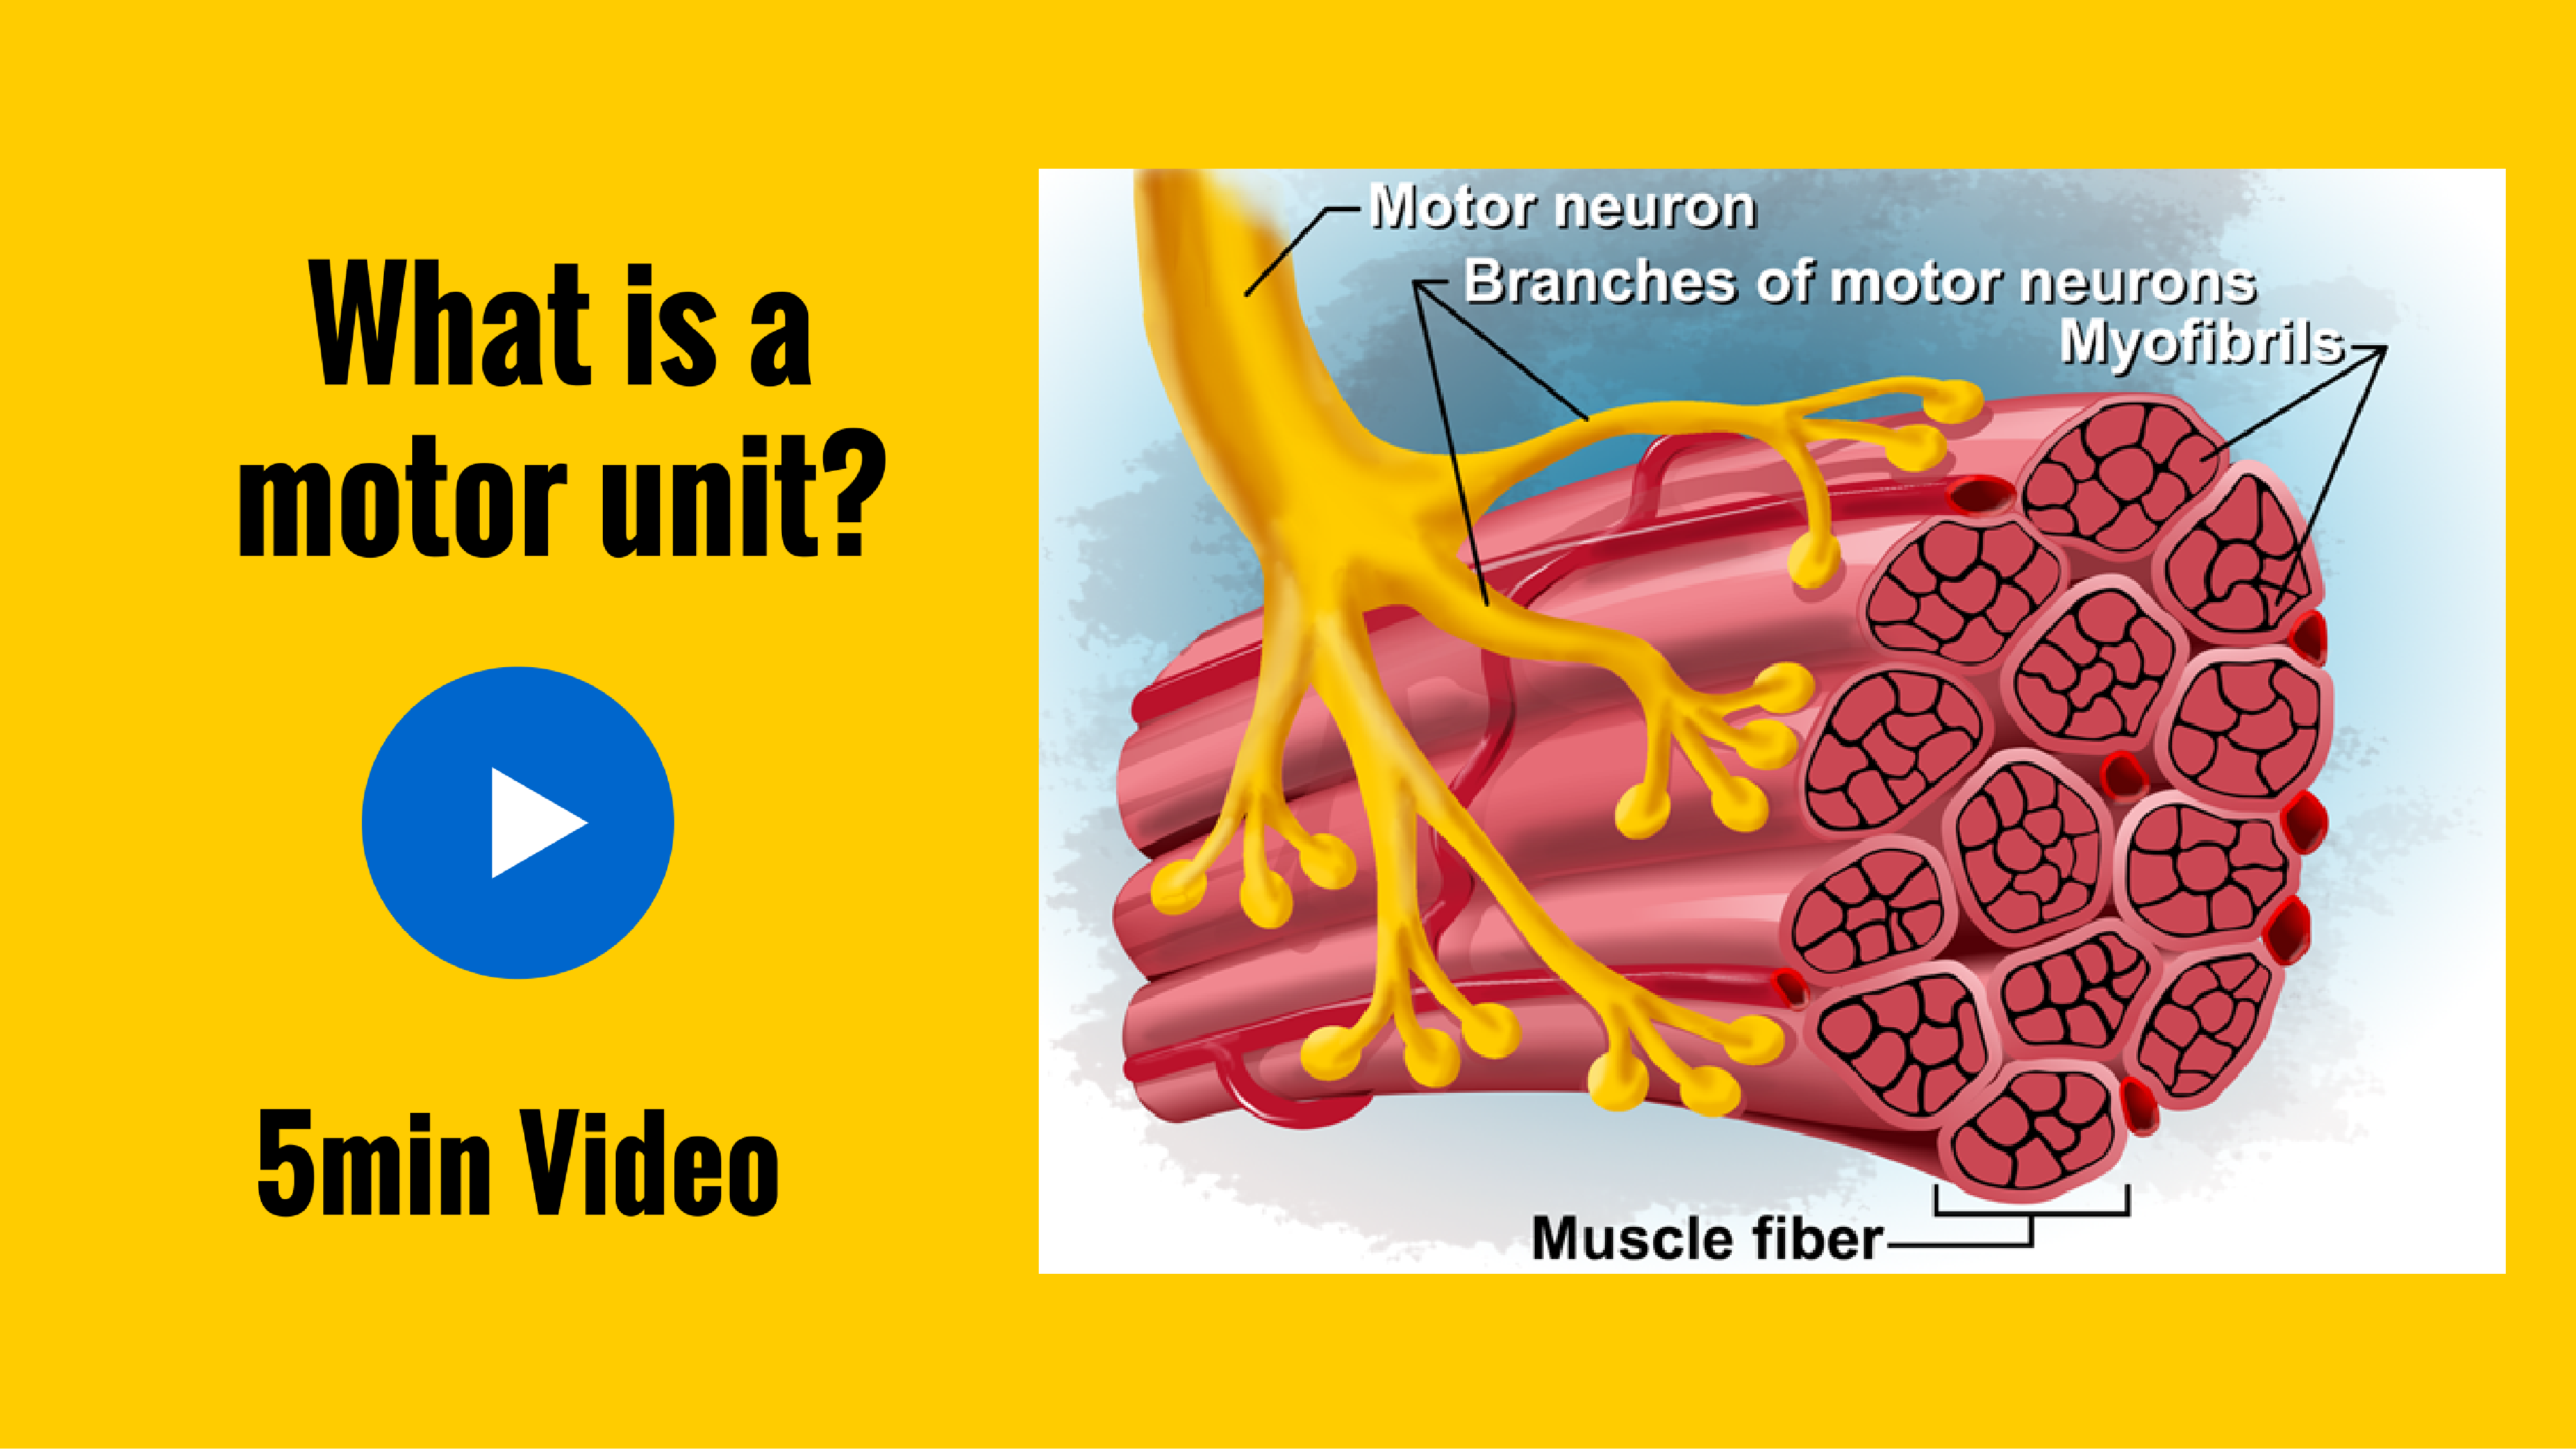 What is a motor unit?